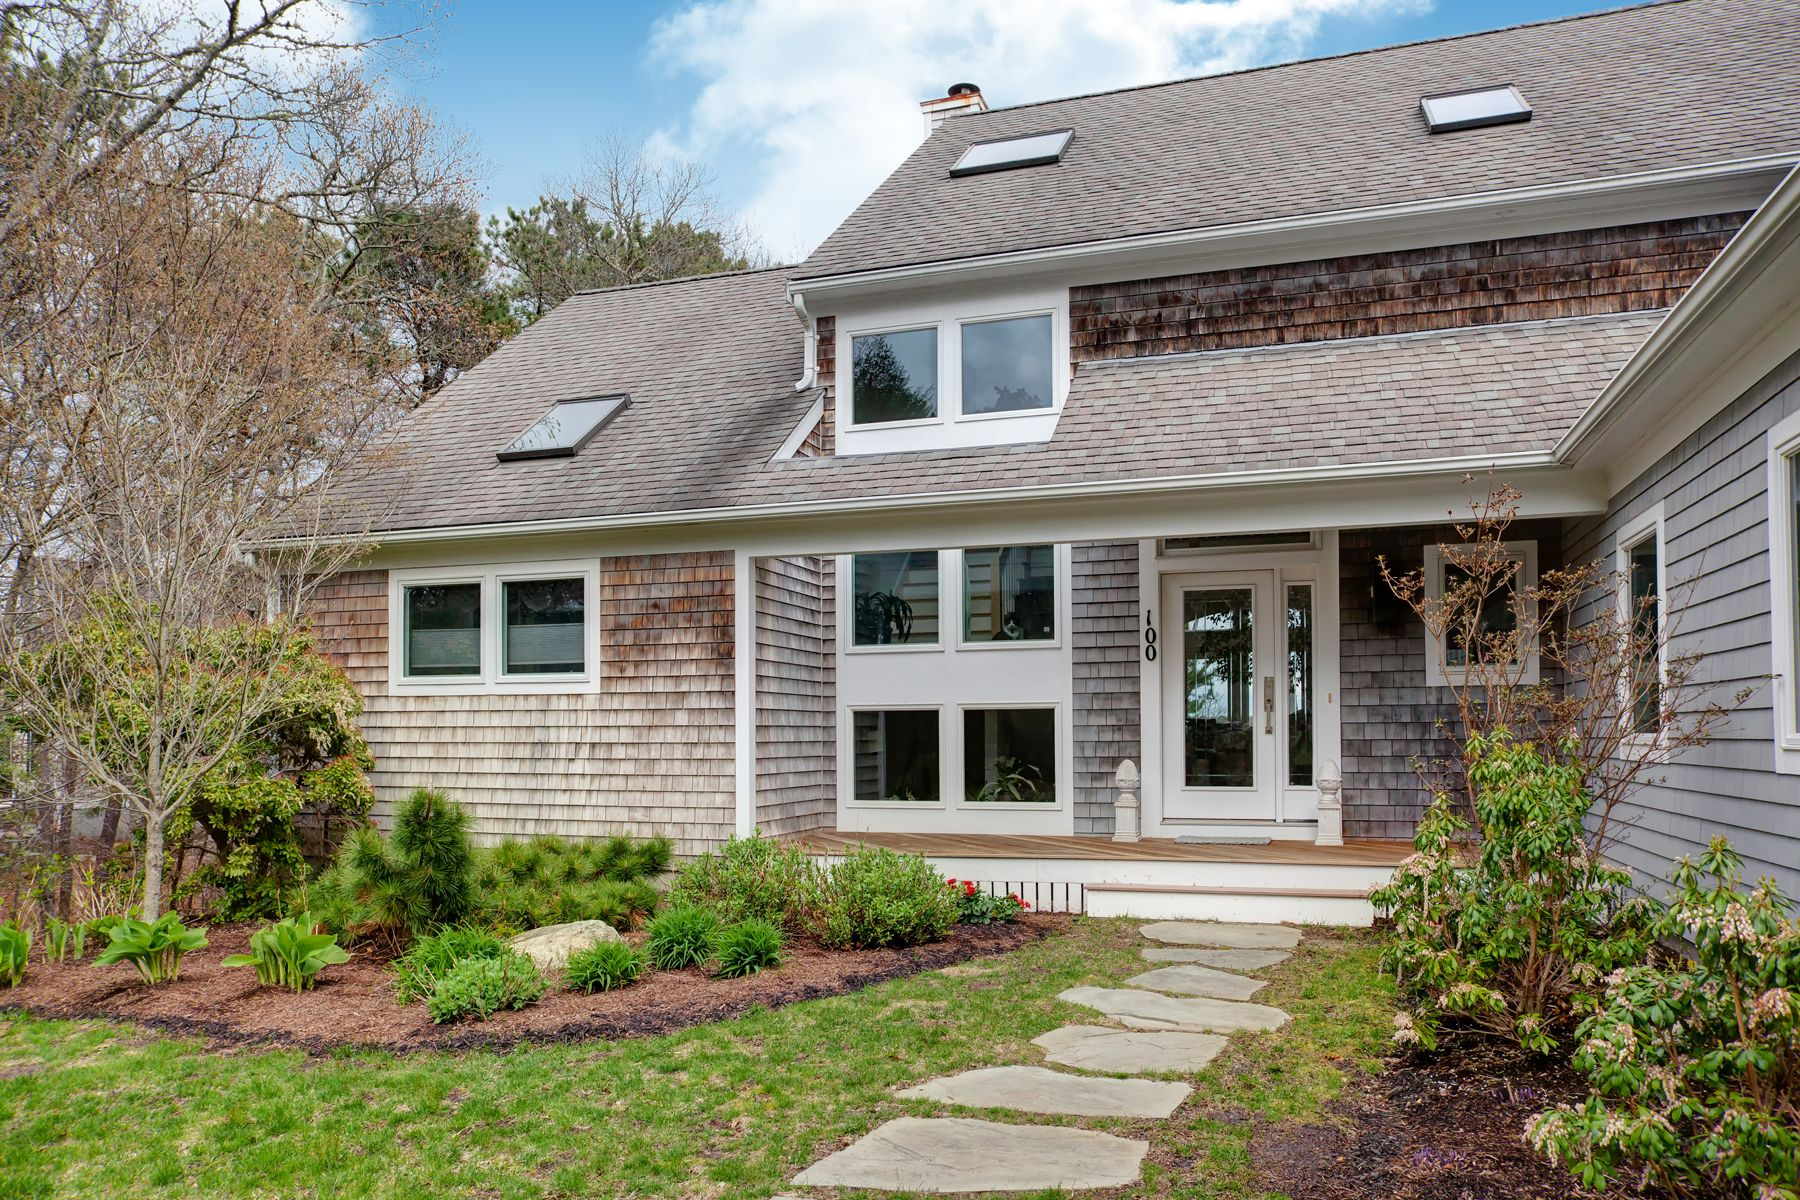 Single Family Home for Active at Waterfront With Association Dock 100 Meadow Neck Road East Falmouth, Massachusetts 02536 United States